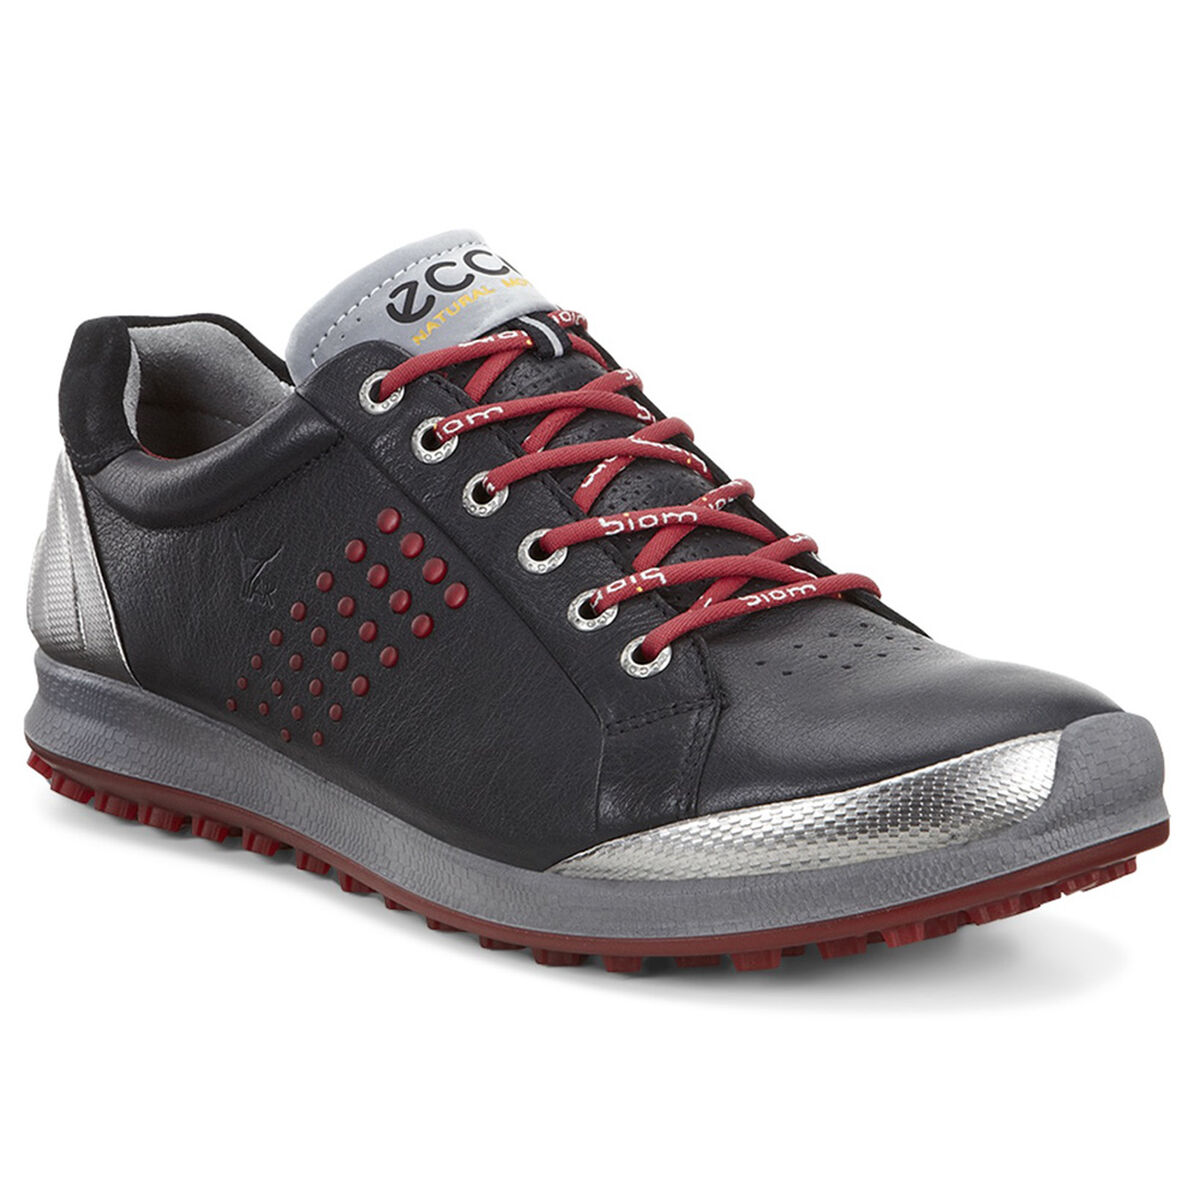 e27121b57f29 ECCO BIOM Hybrid 2 Men s Golf Shoe - Black Red